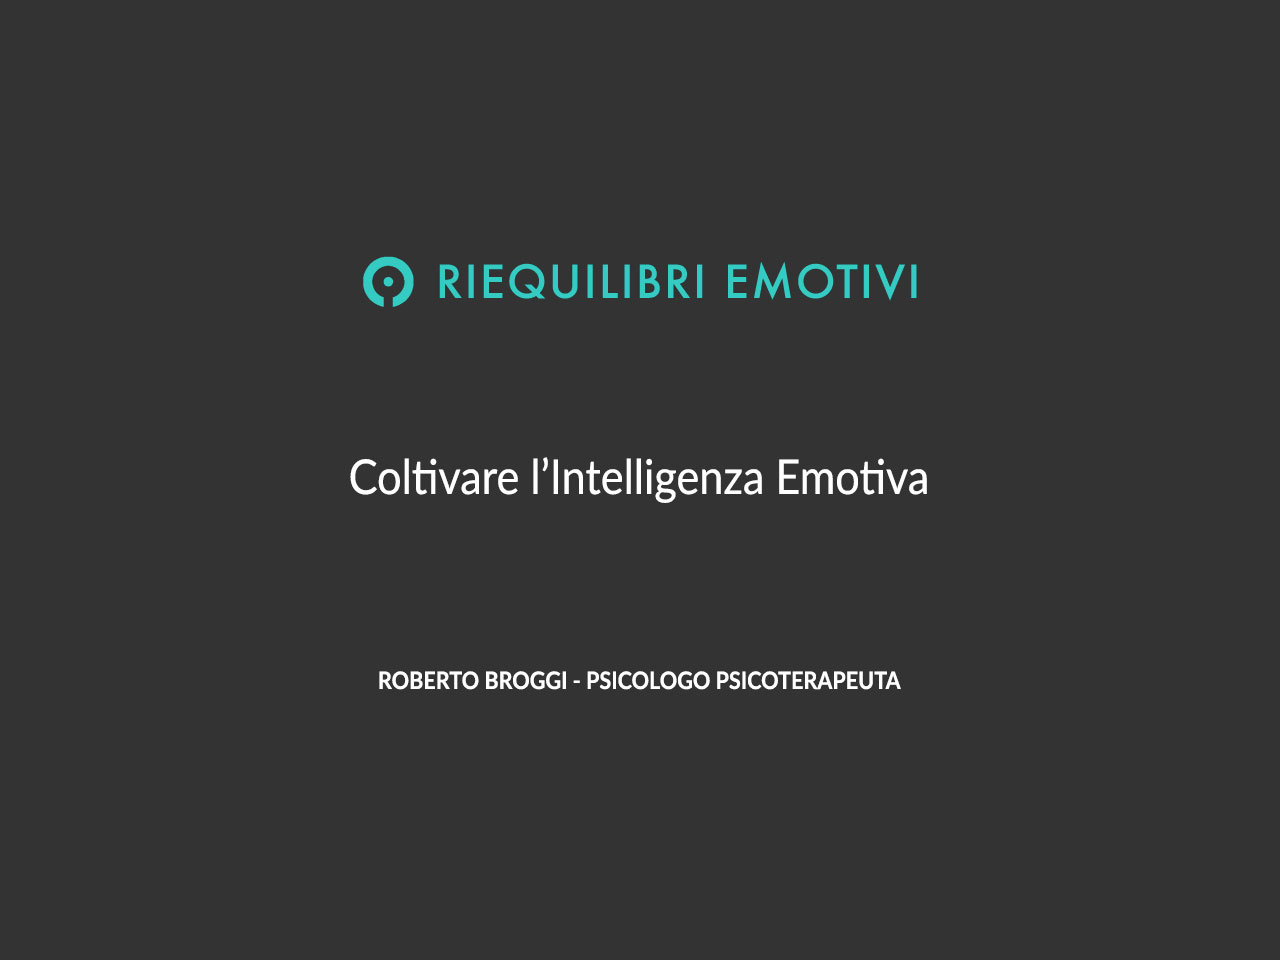 Coltivare-Intelligenza-Emotiva